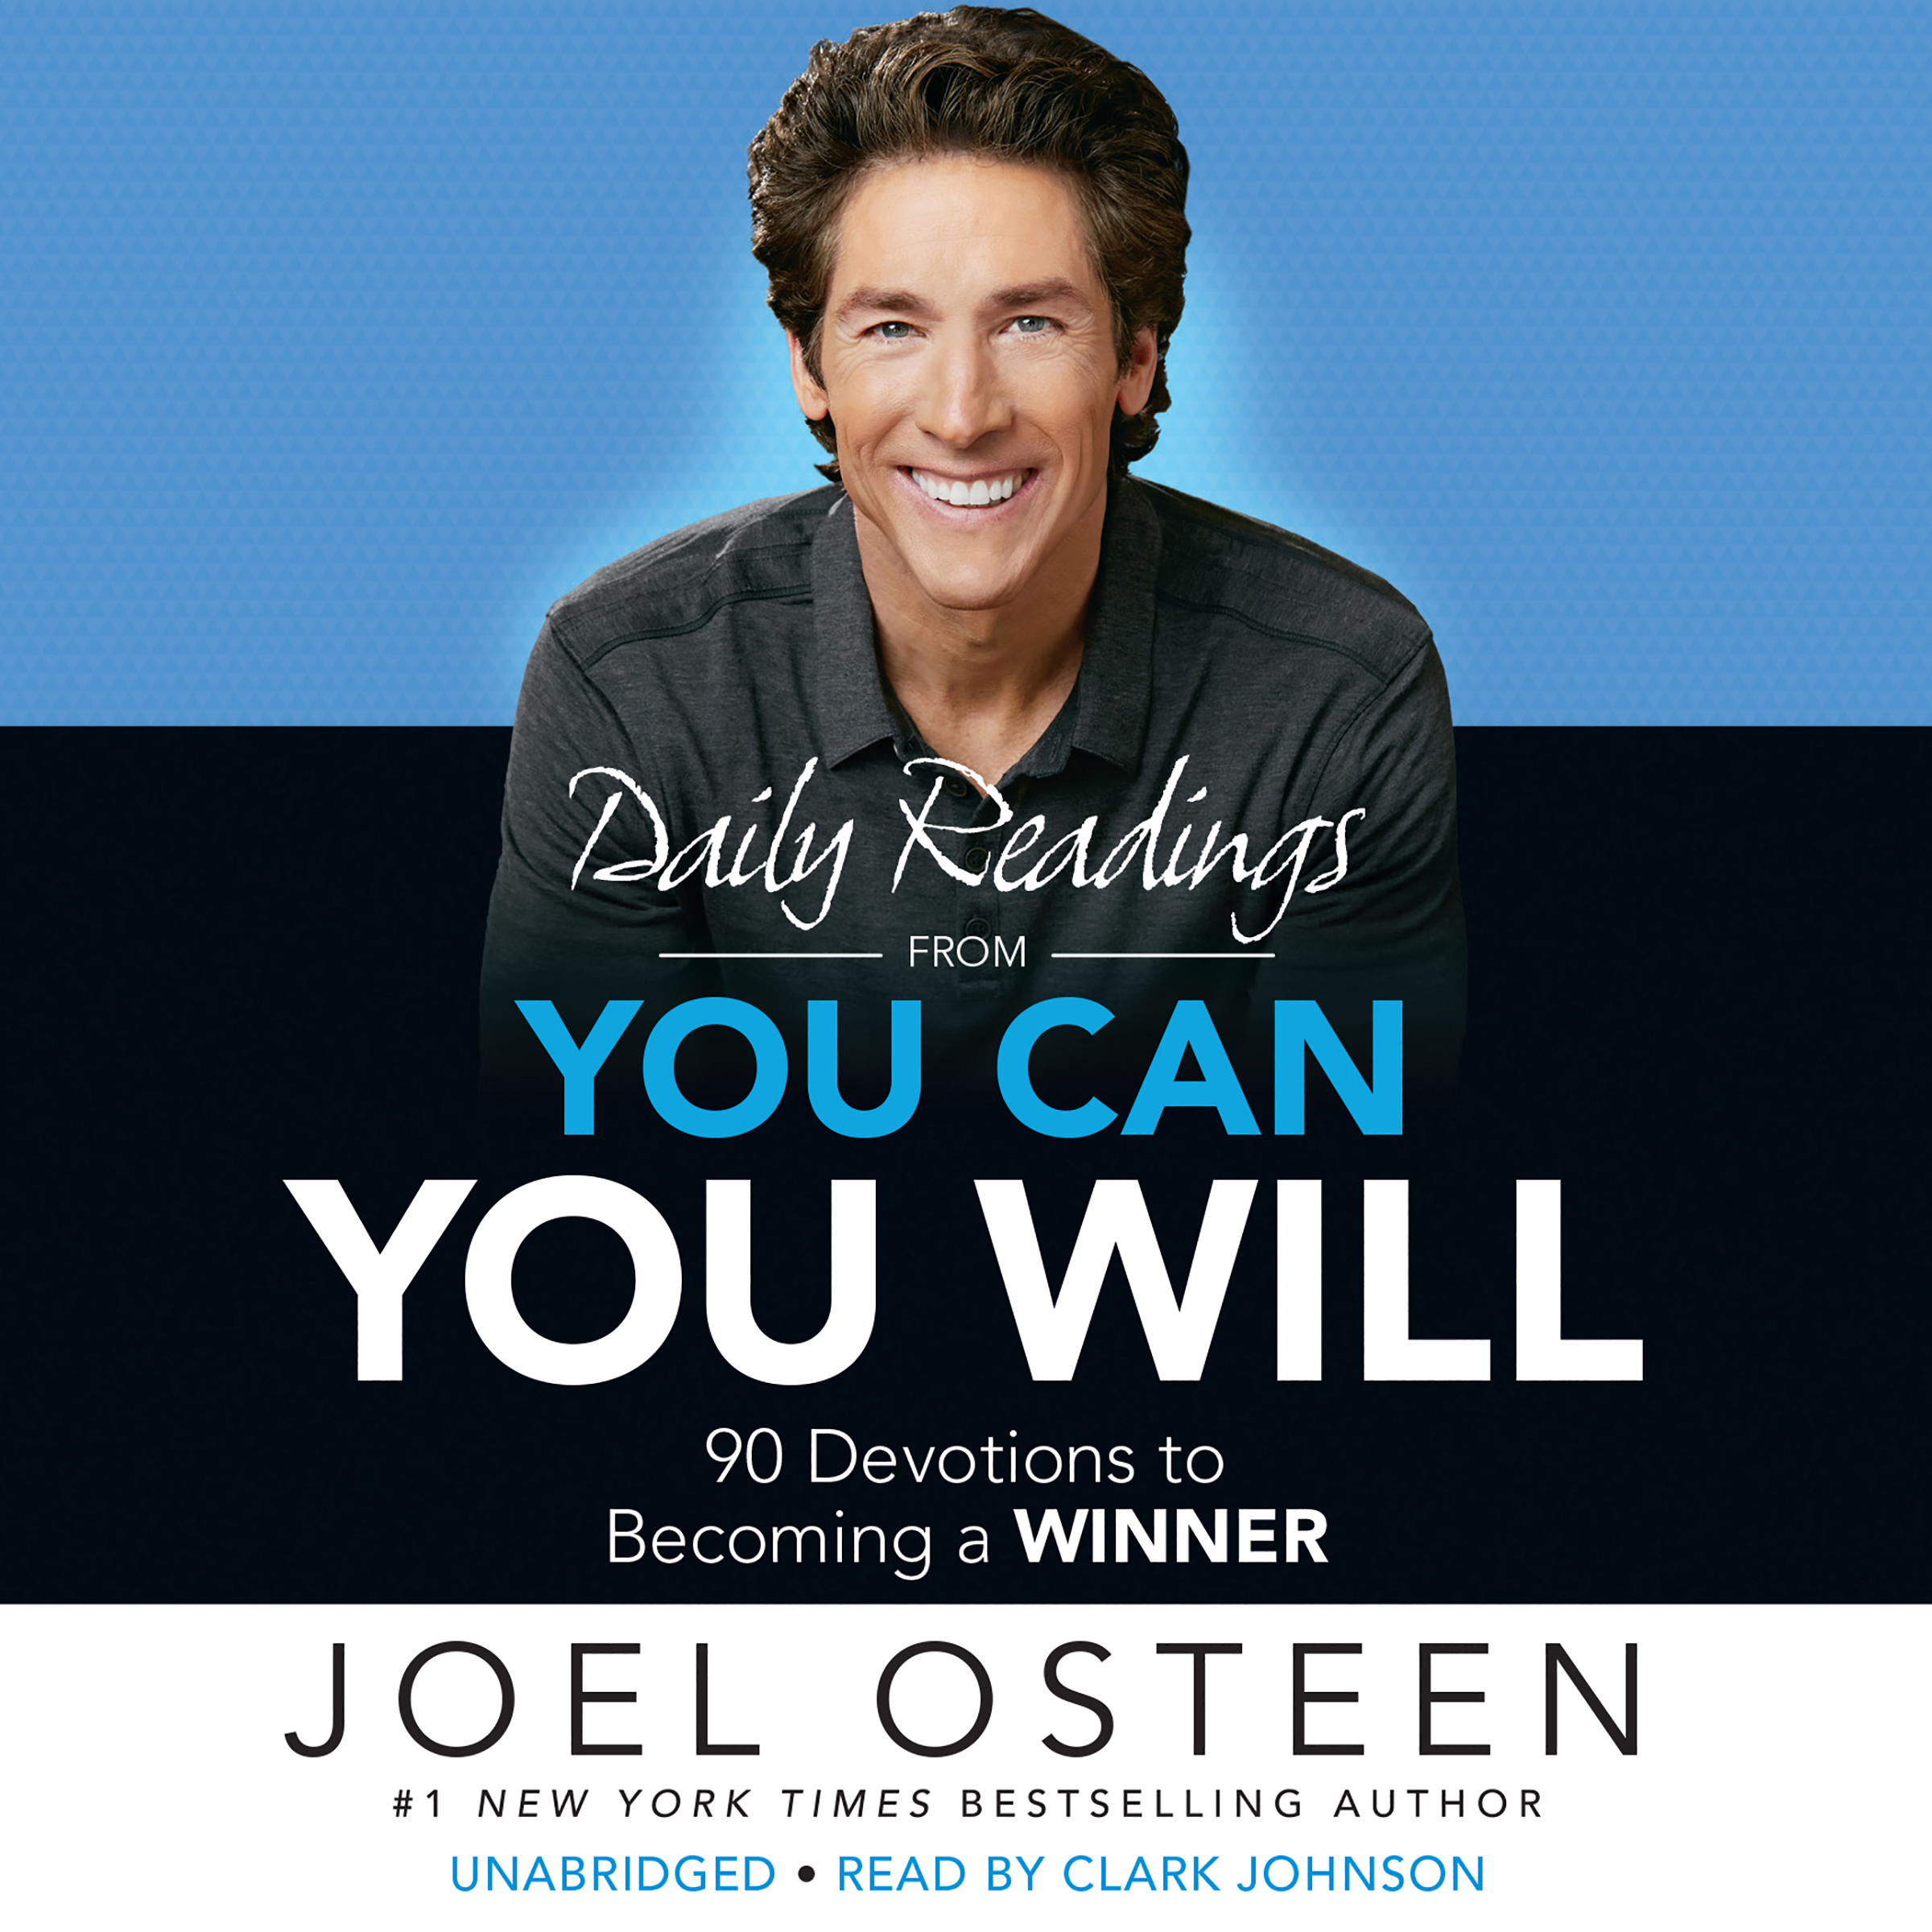 Printable Daily Readings from You Can, You Will: 90 Devotions to Becoming a Winner Audiobook Cover Art